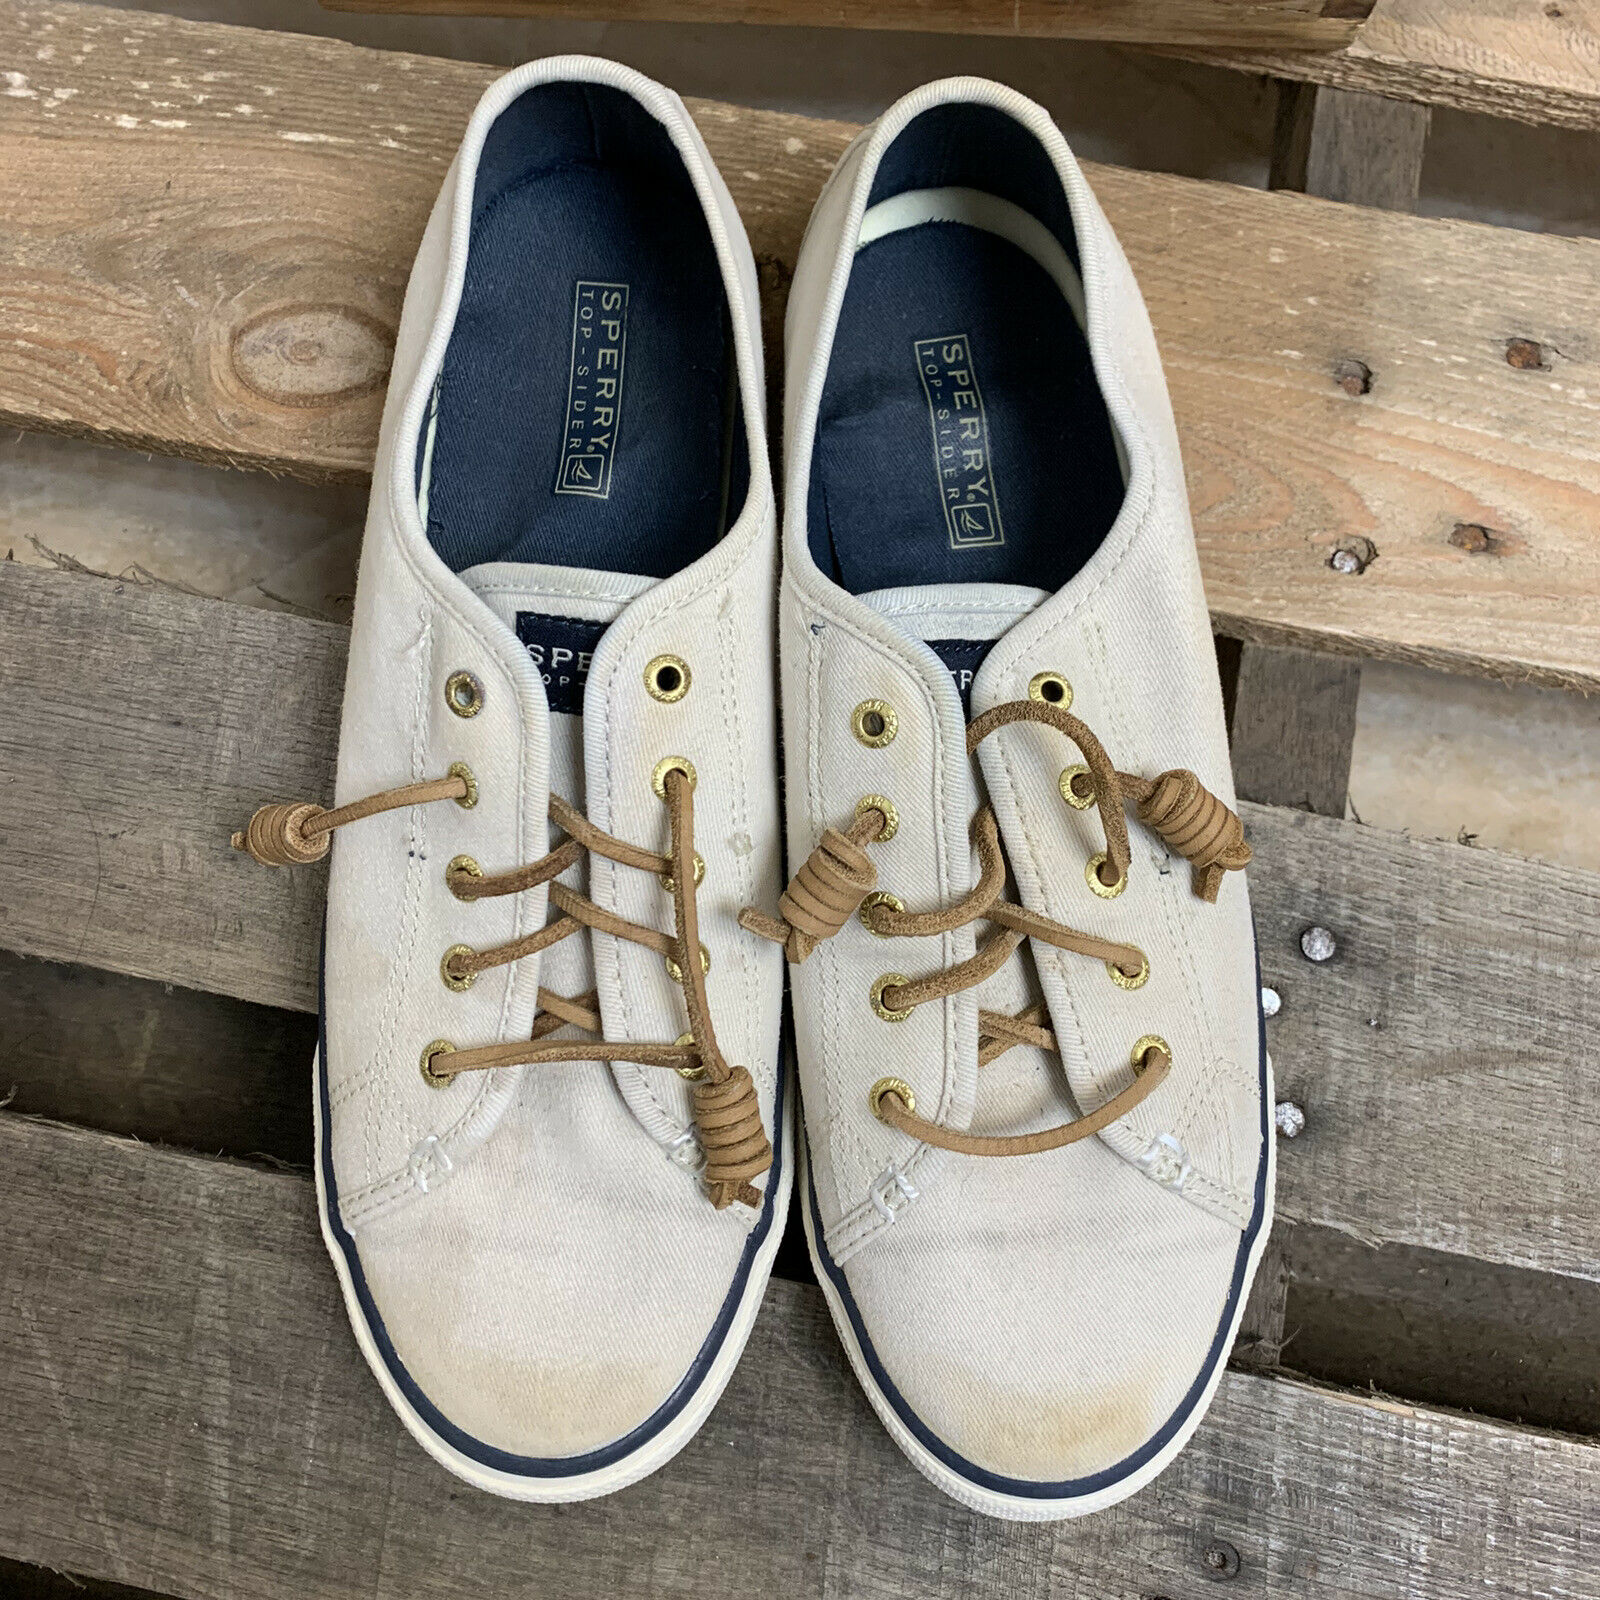 Sperry Top Sider Woman's Shoes Casual Canvas Boat Loafers Beige Sz 9.5 M